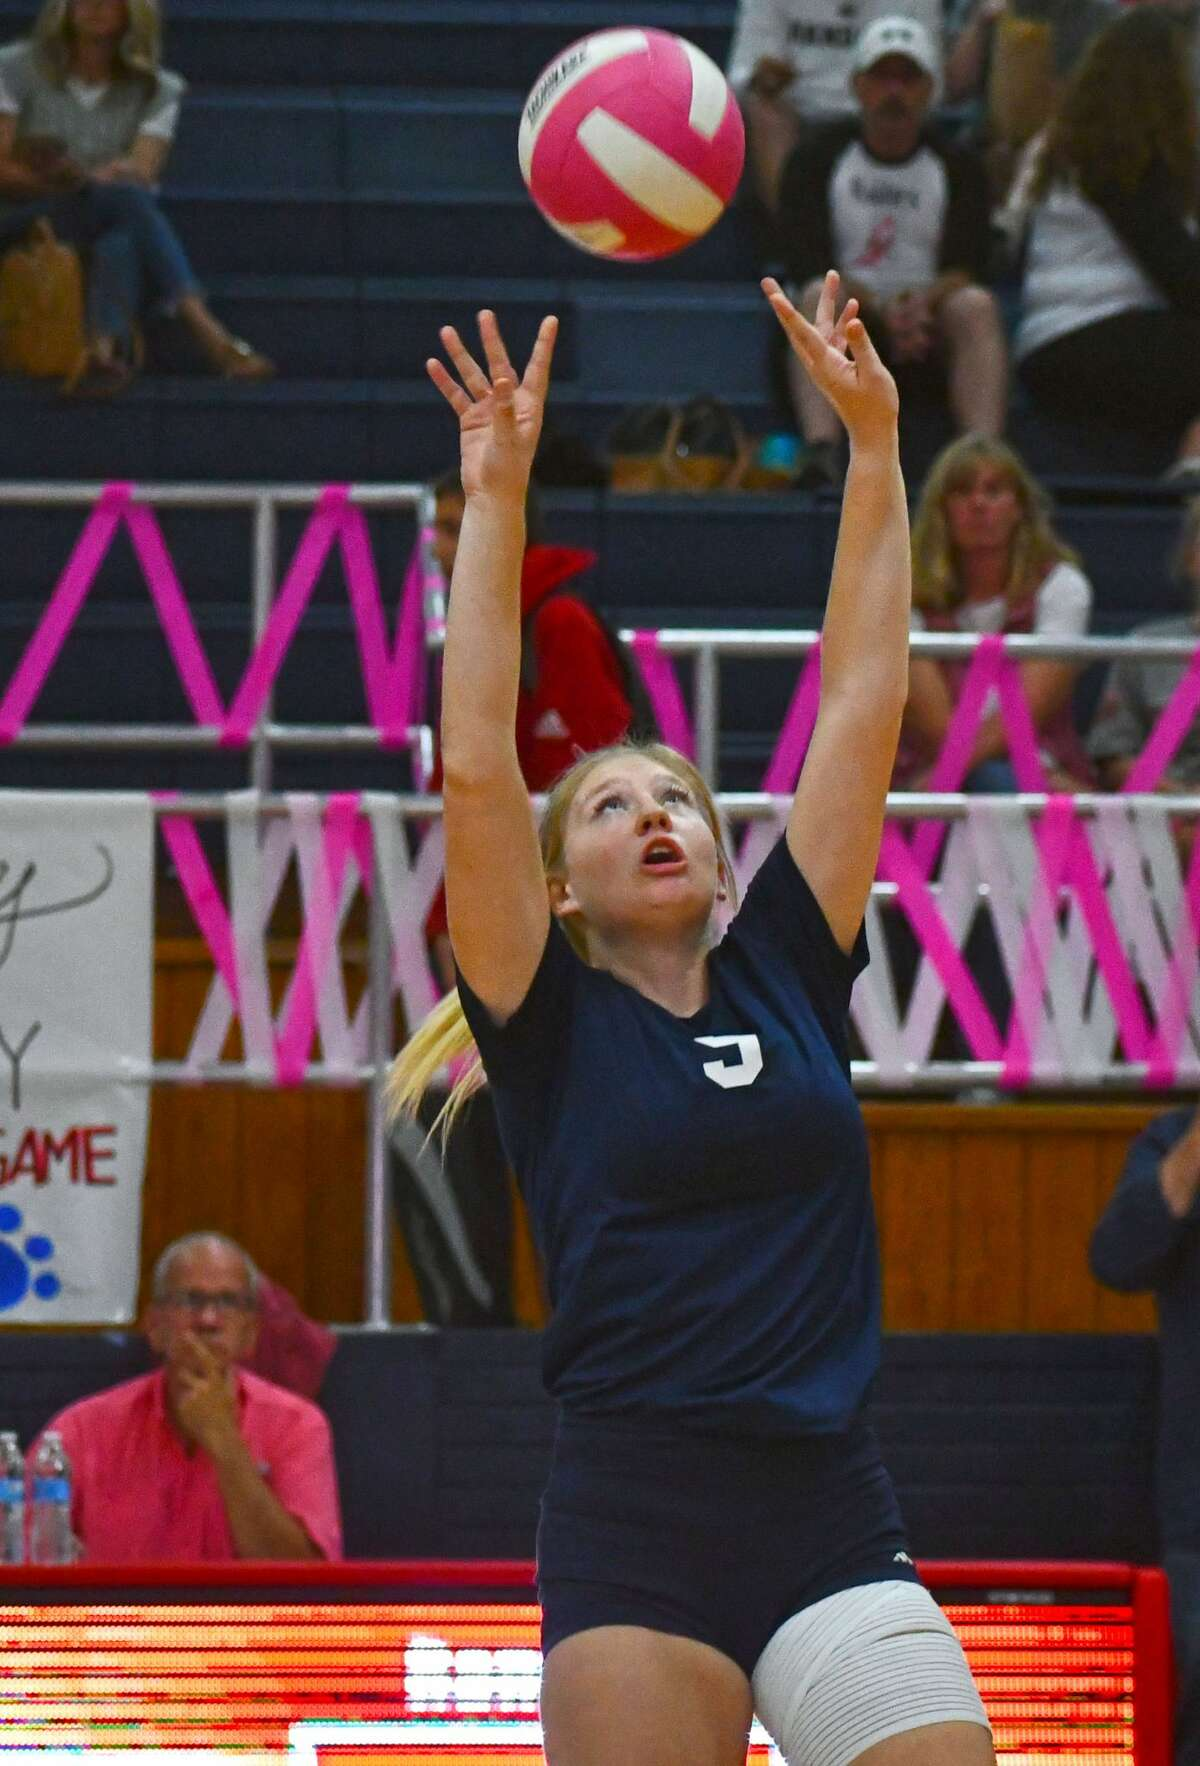 Plainview suffered a 3-0 loss to Canyon Randall in a District 3-5A volleyball game on Friday afternoon in the Dog House.